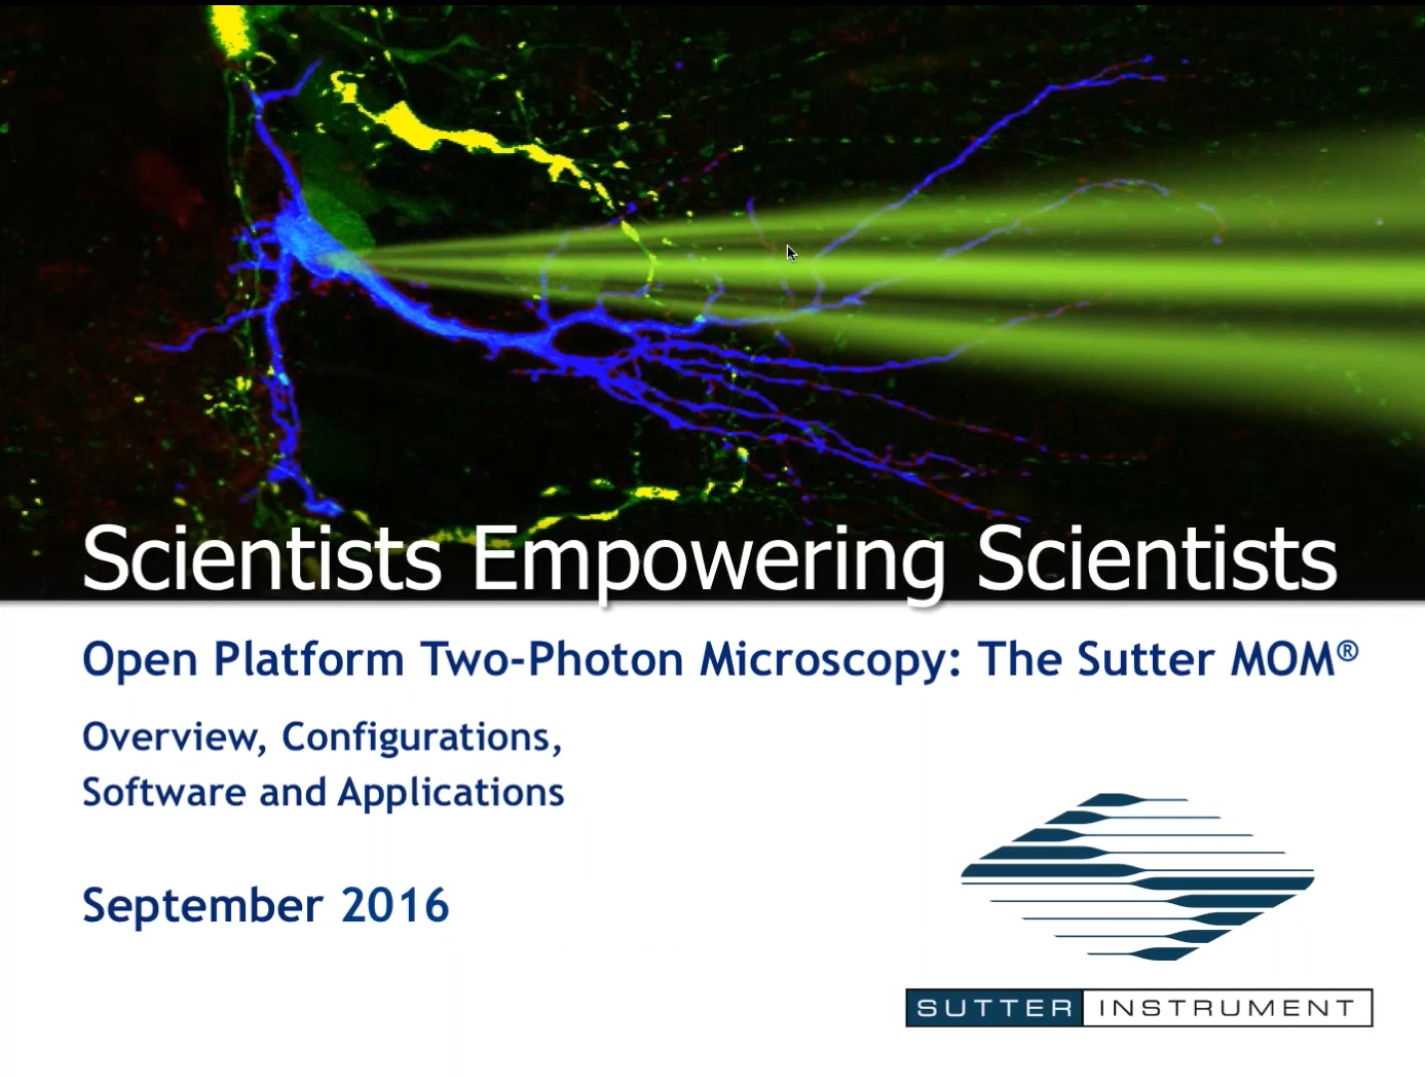 Open Platform Two-Photon Microscopy: The Sutter MOM